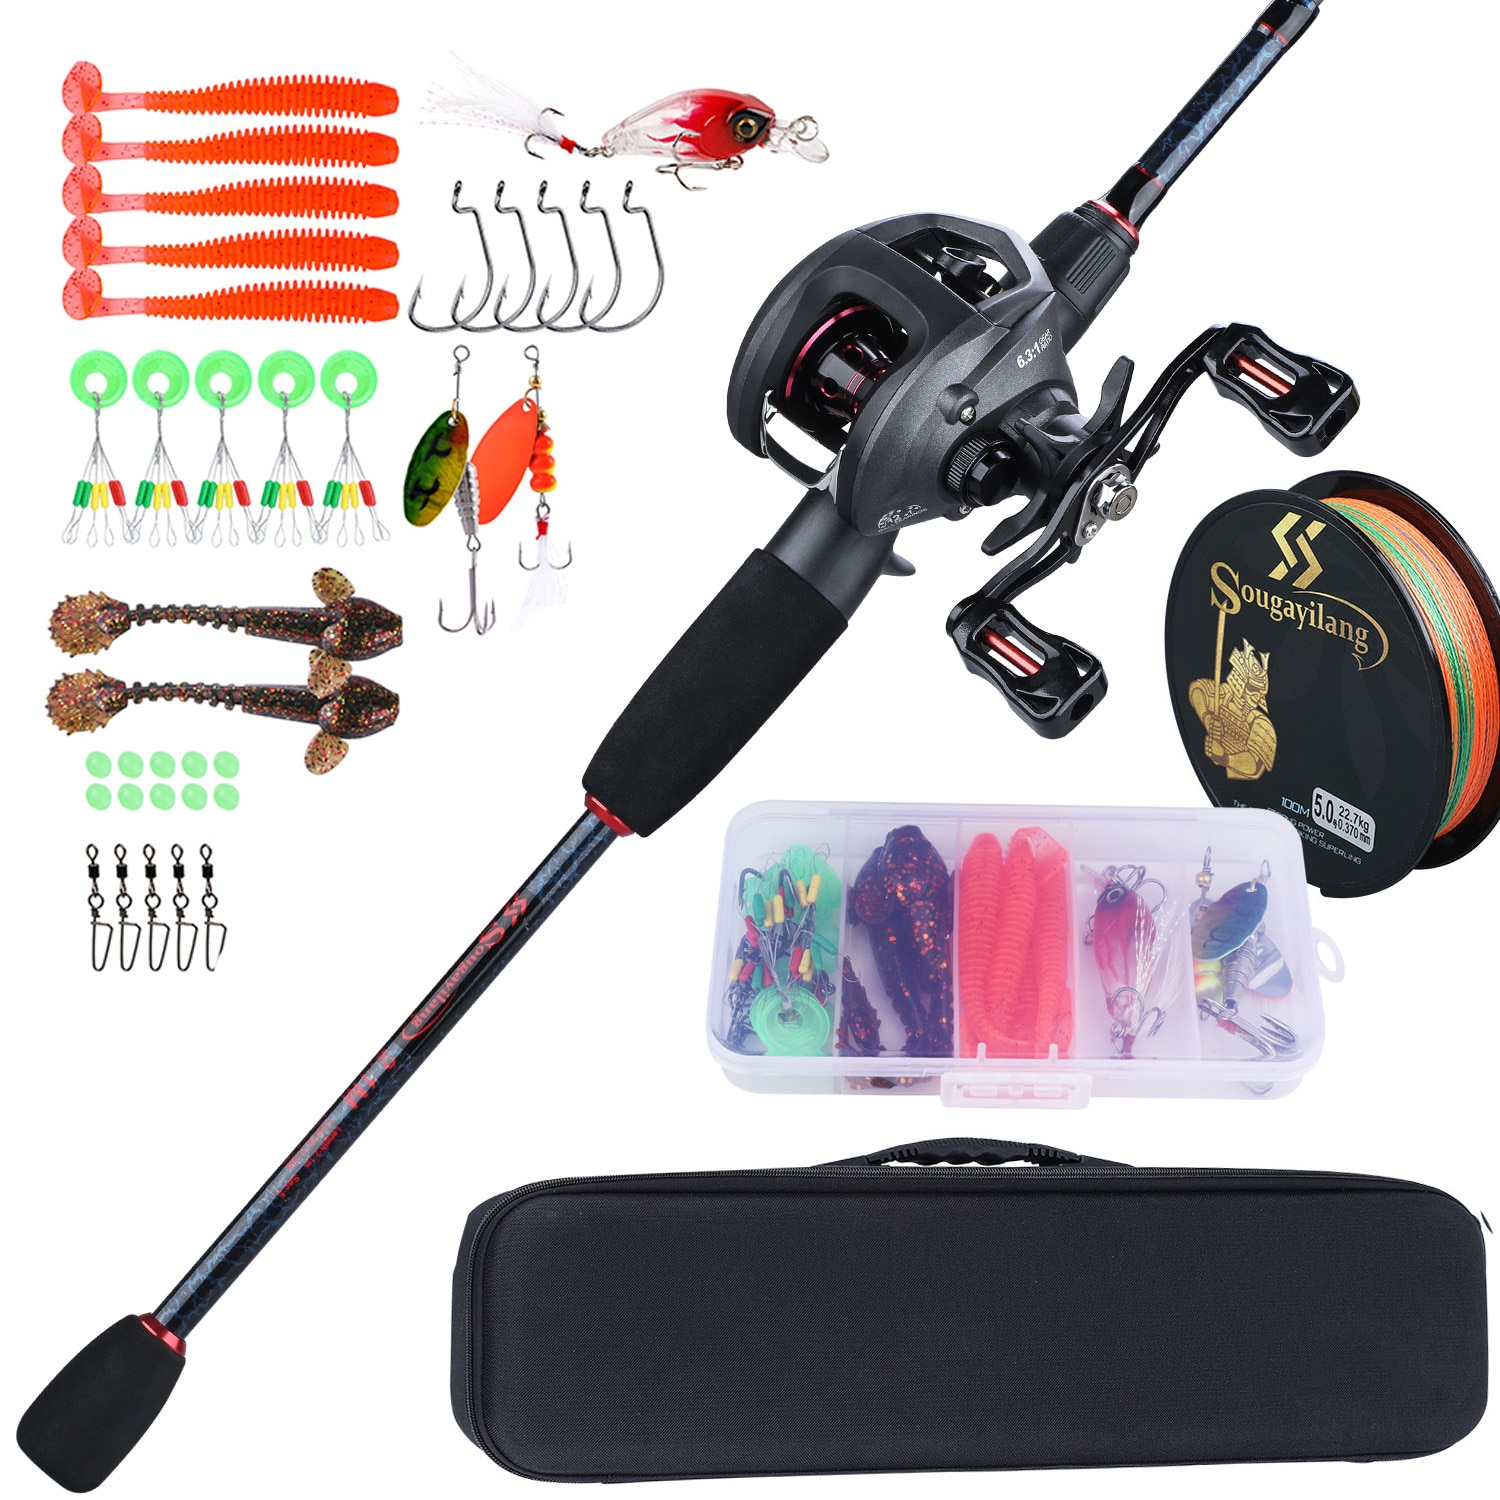 high quality 1 65m telescopic lure rod set casting spinning rod fishing reel fishing rod reel line lures hooks portable bag Sougayilang Fishing Rod Full Kits Casting Fishing Rod and Baitcasting Reel Fishing Lure Hooks Line Bag Travel Fishing Rod Combos